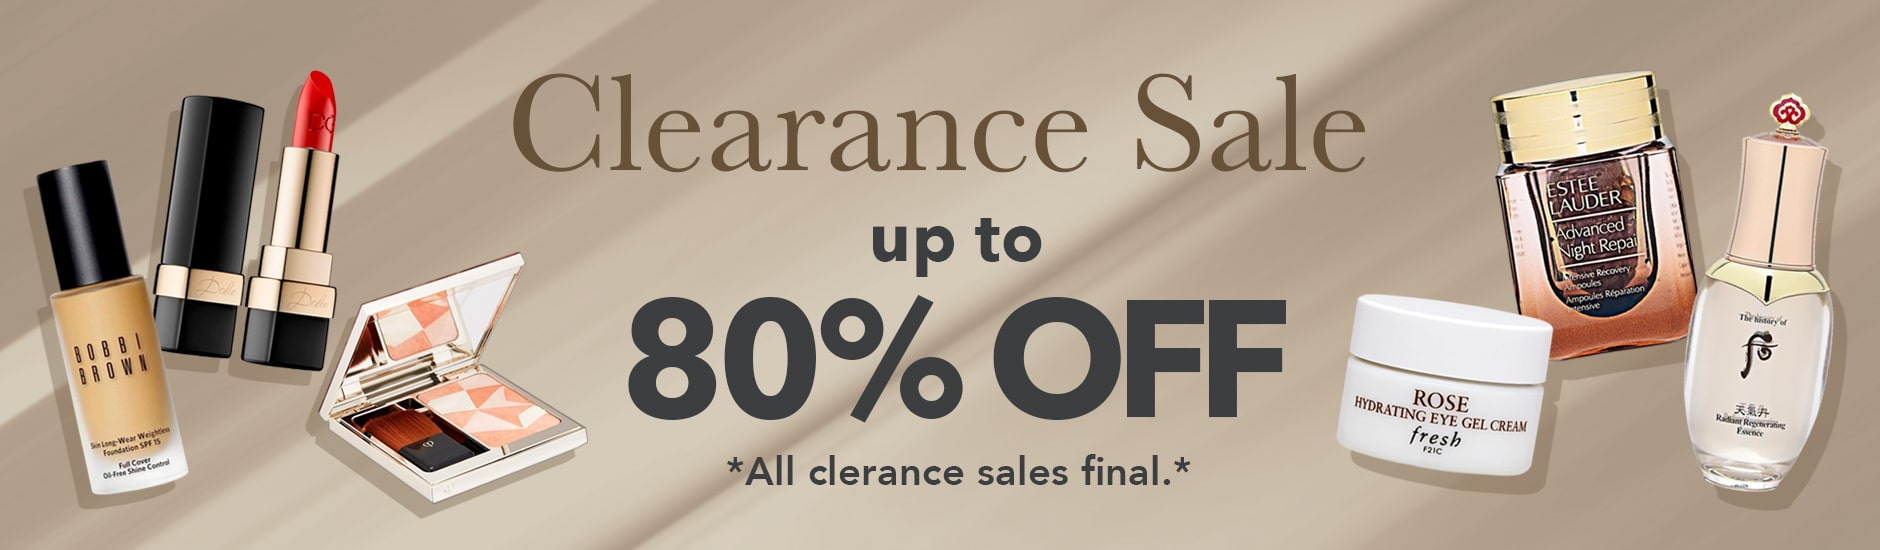 Clearance Sale Page Banner